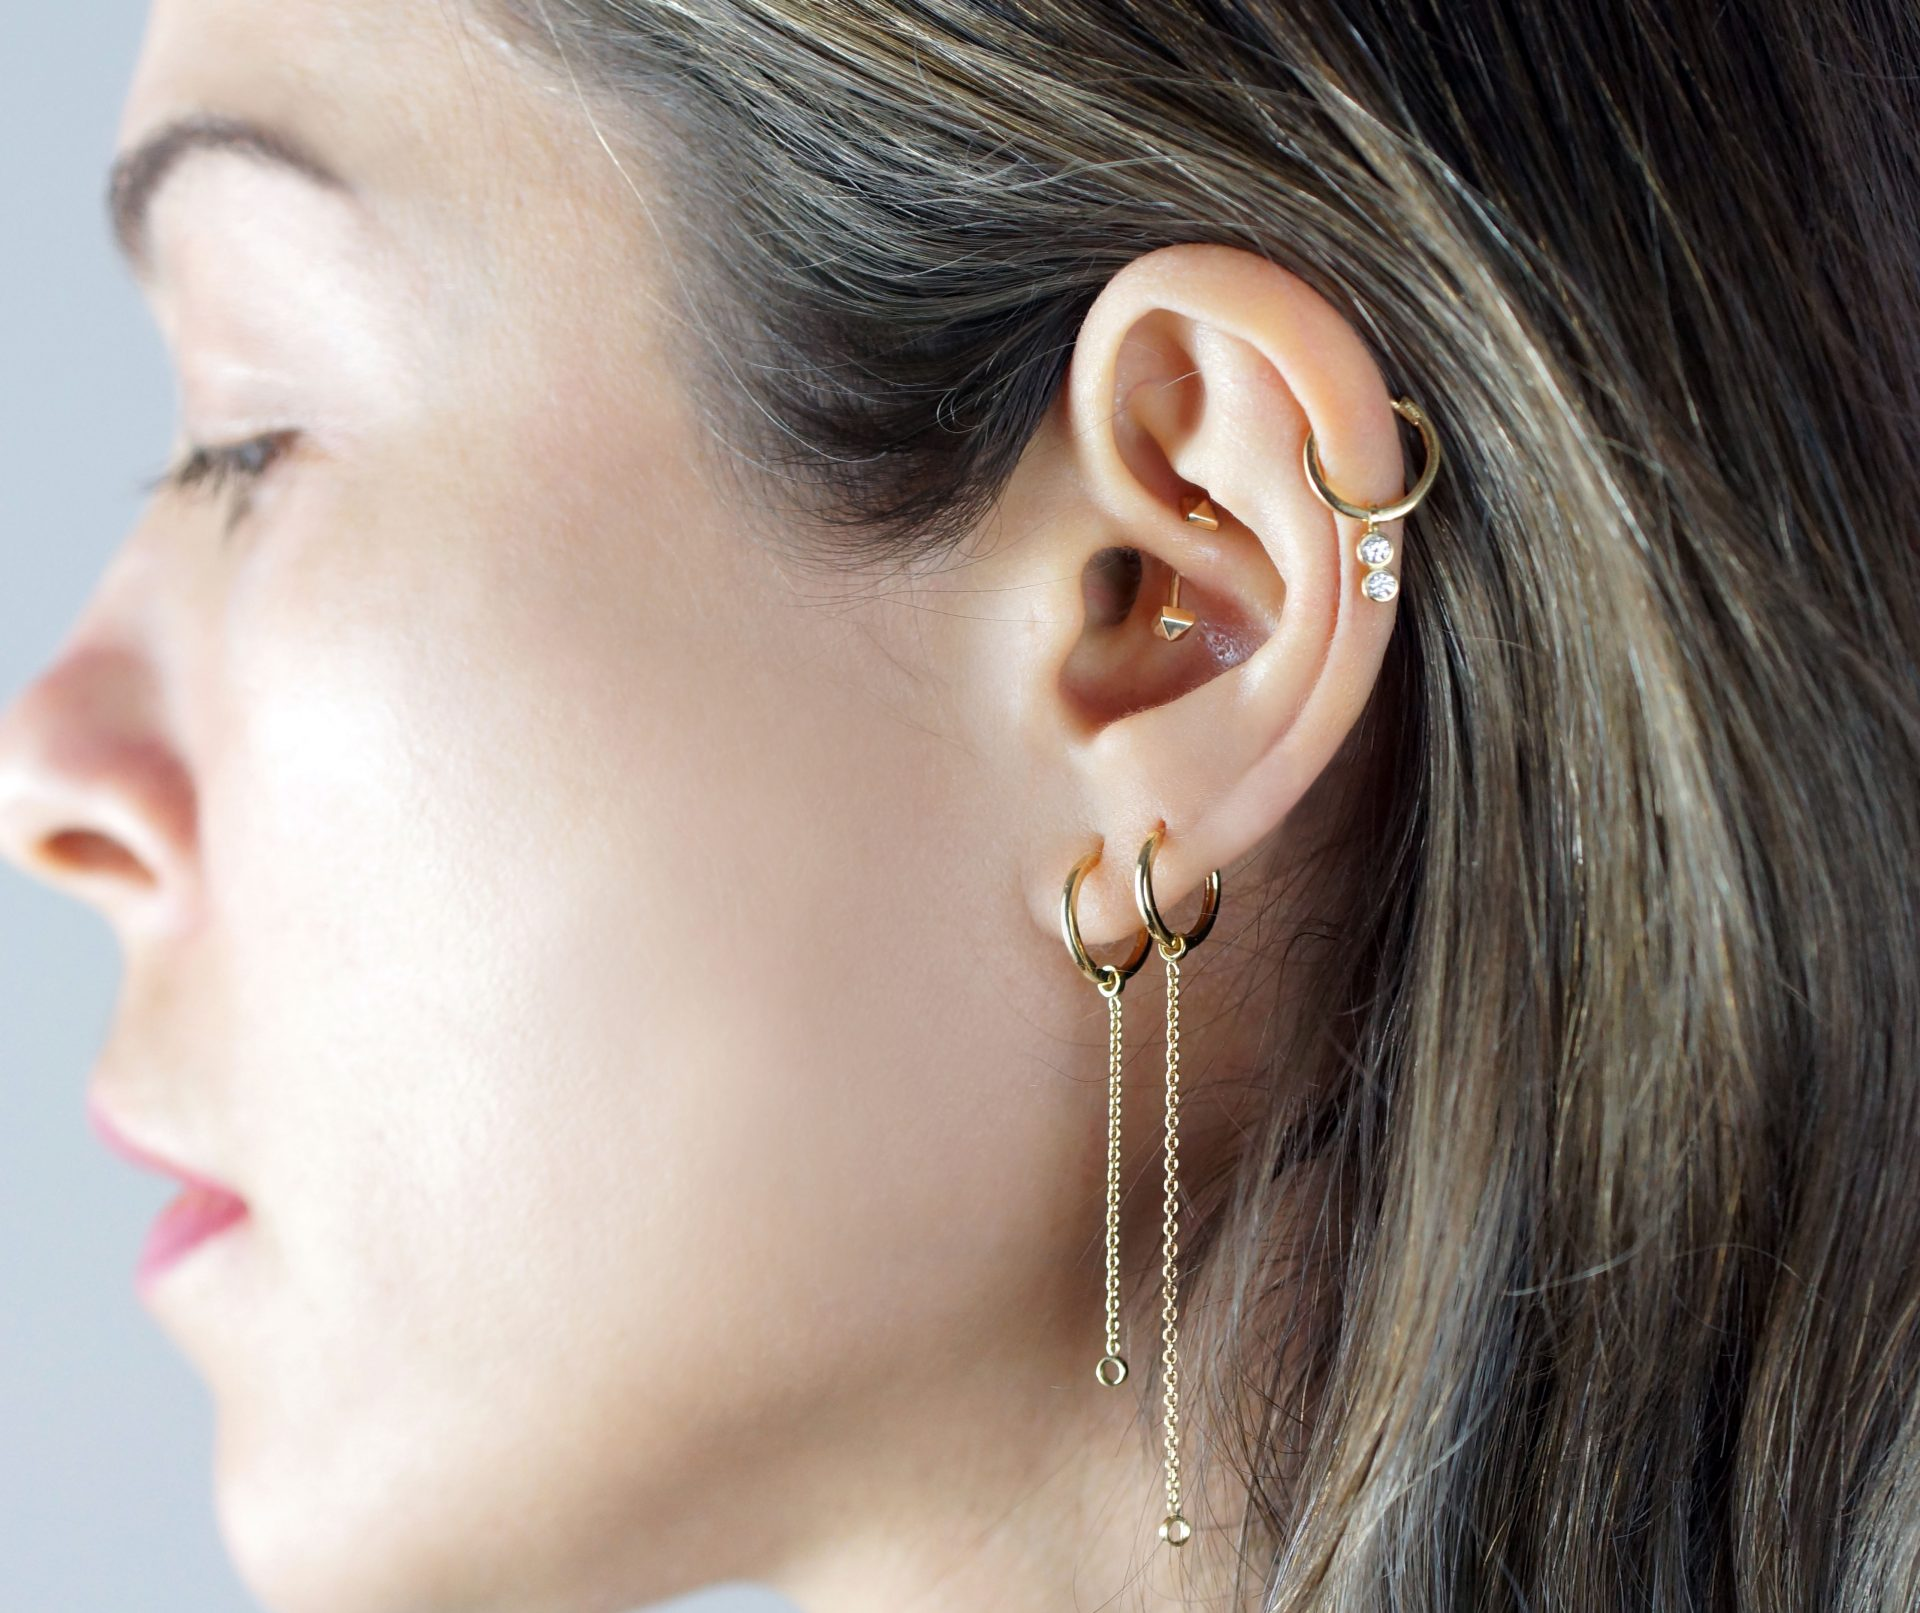 Lena-Cohen-Fine-Jewellery-is-a-handcrafted-range-of-luxury-cartilage-earrings-that-can-be-effortlessly-styled,-stacked-and-layered-as-you-please